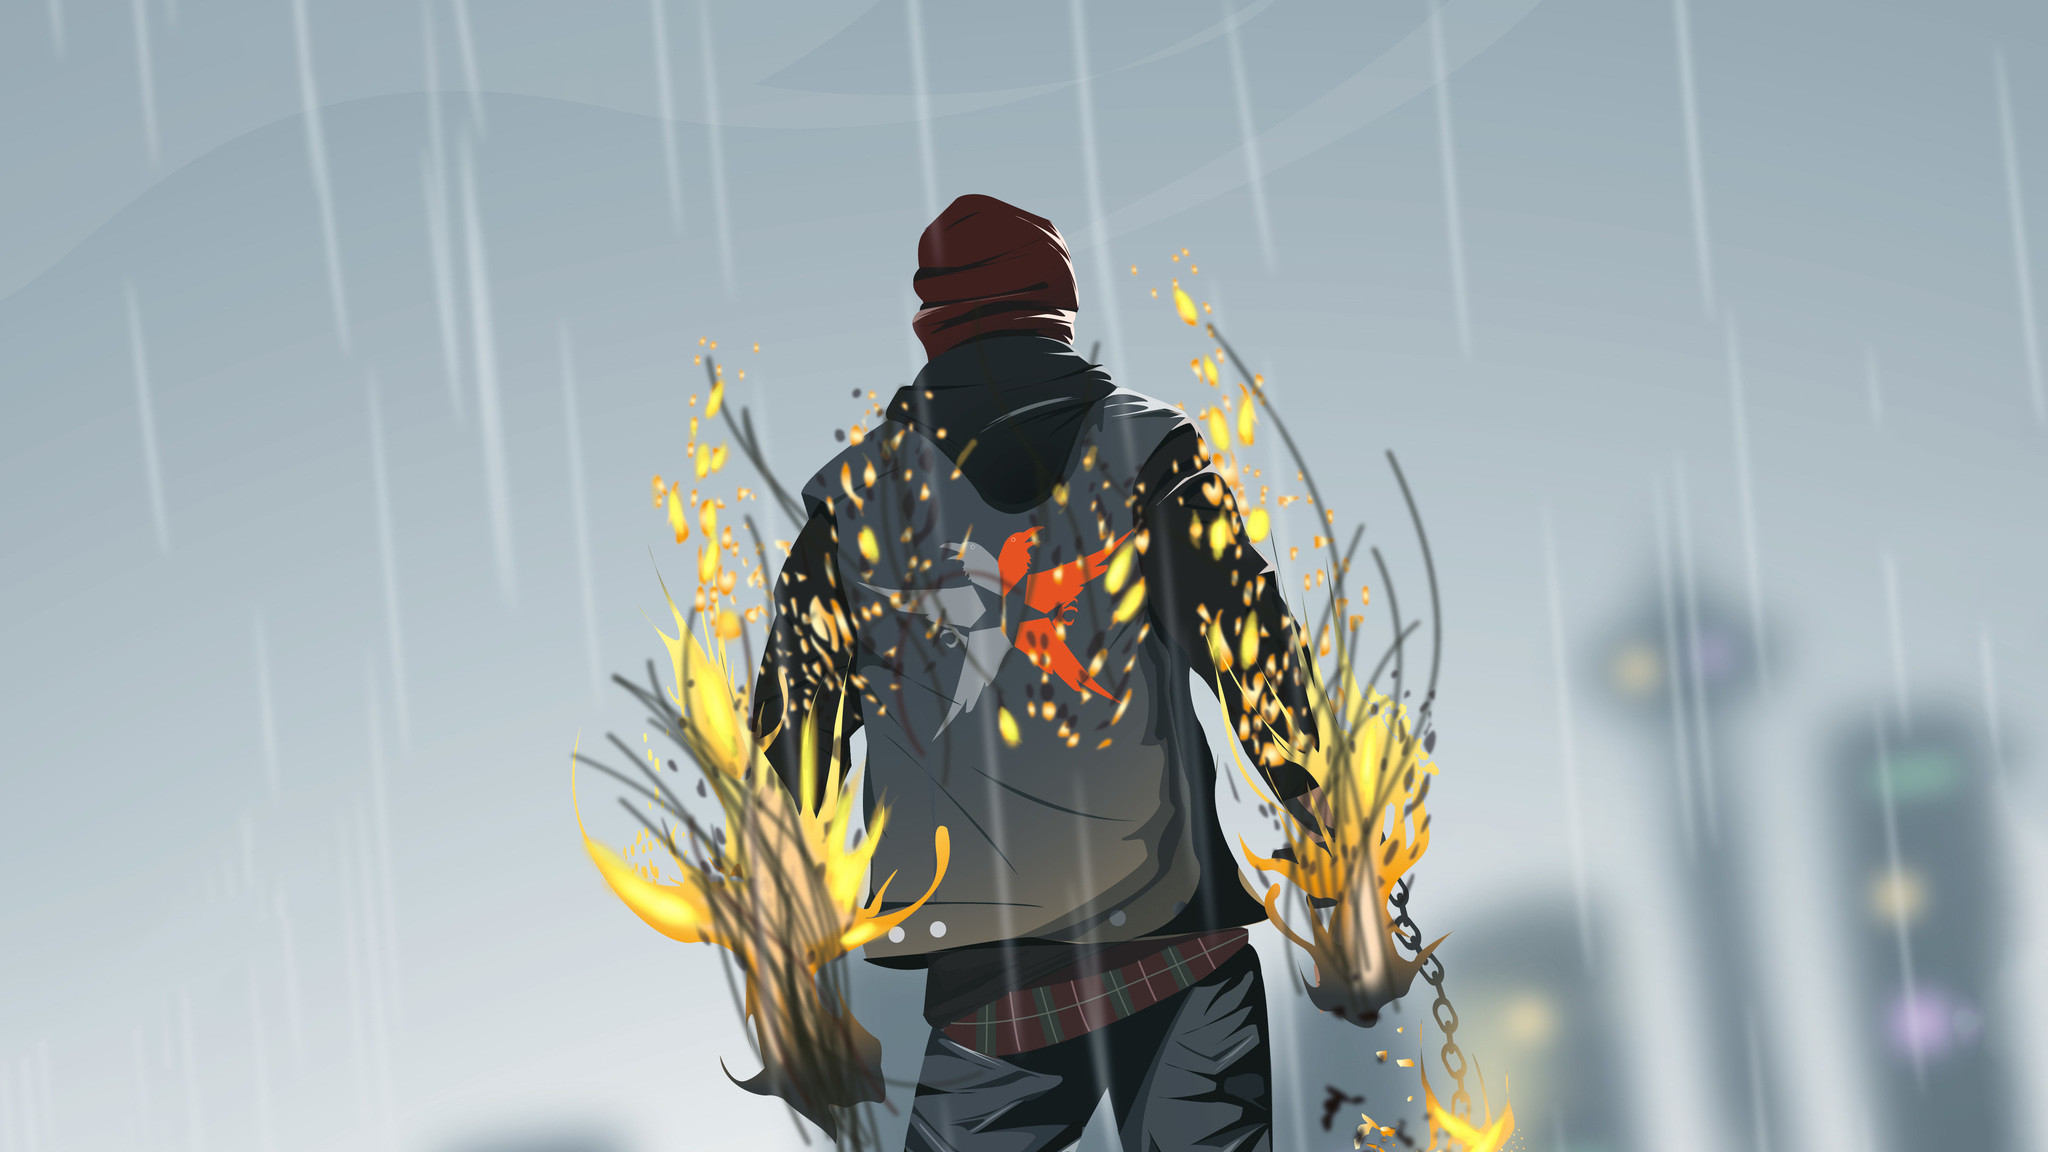 2048x1152 infamous-second-son-game-4k-f8.jpg